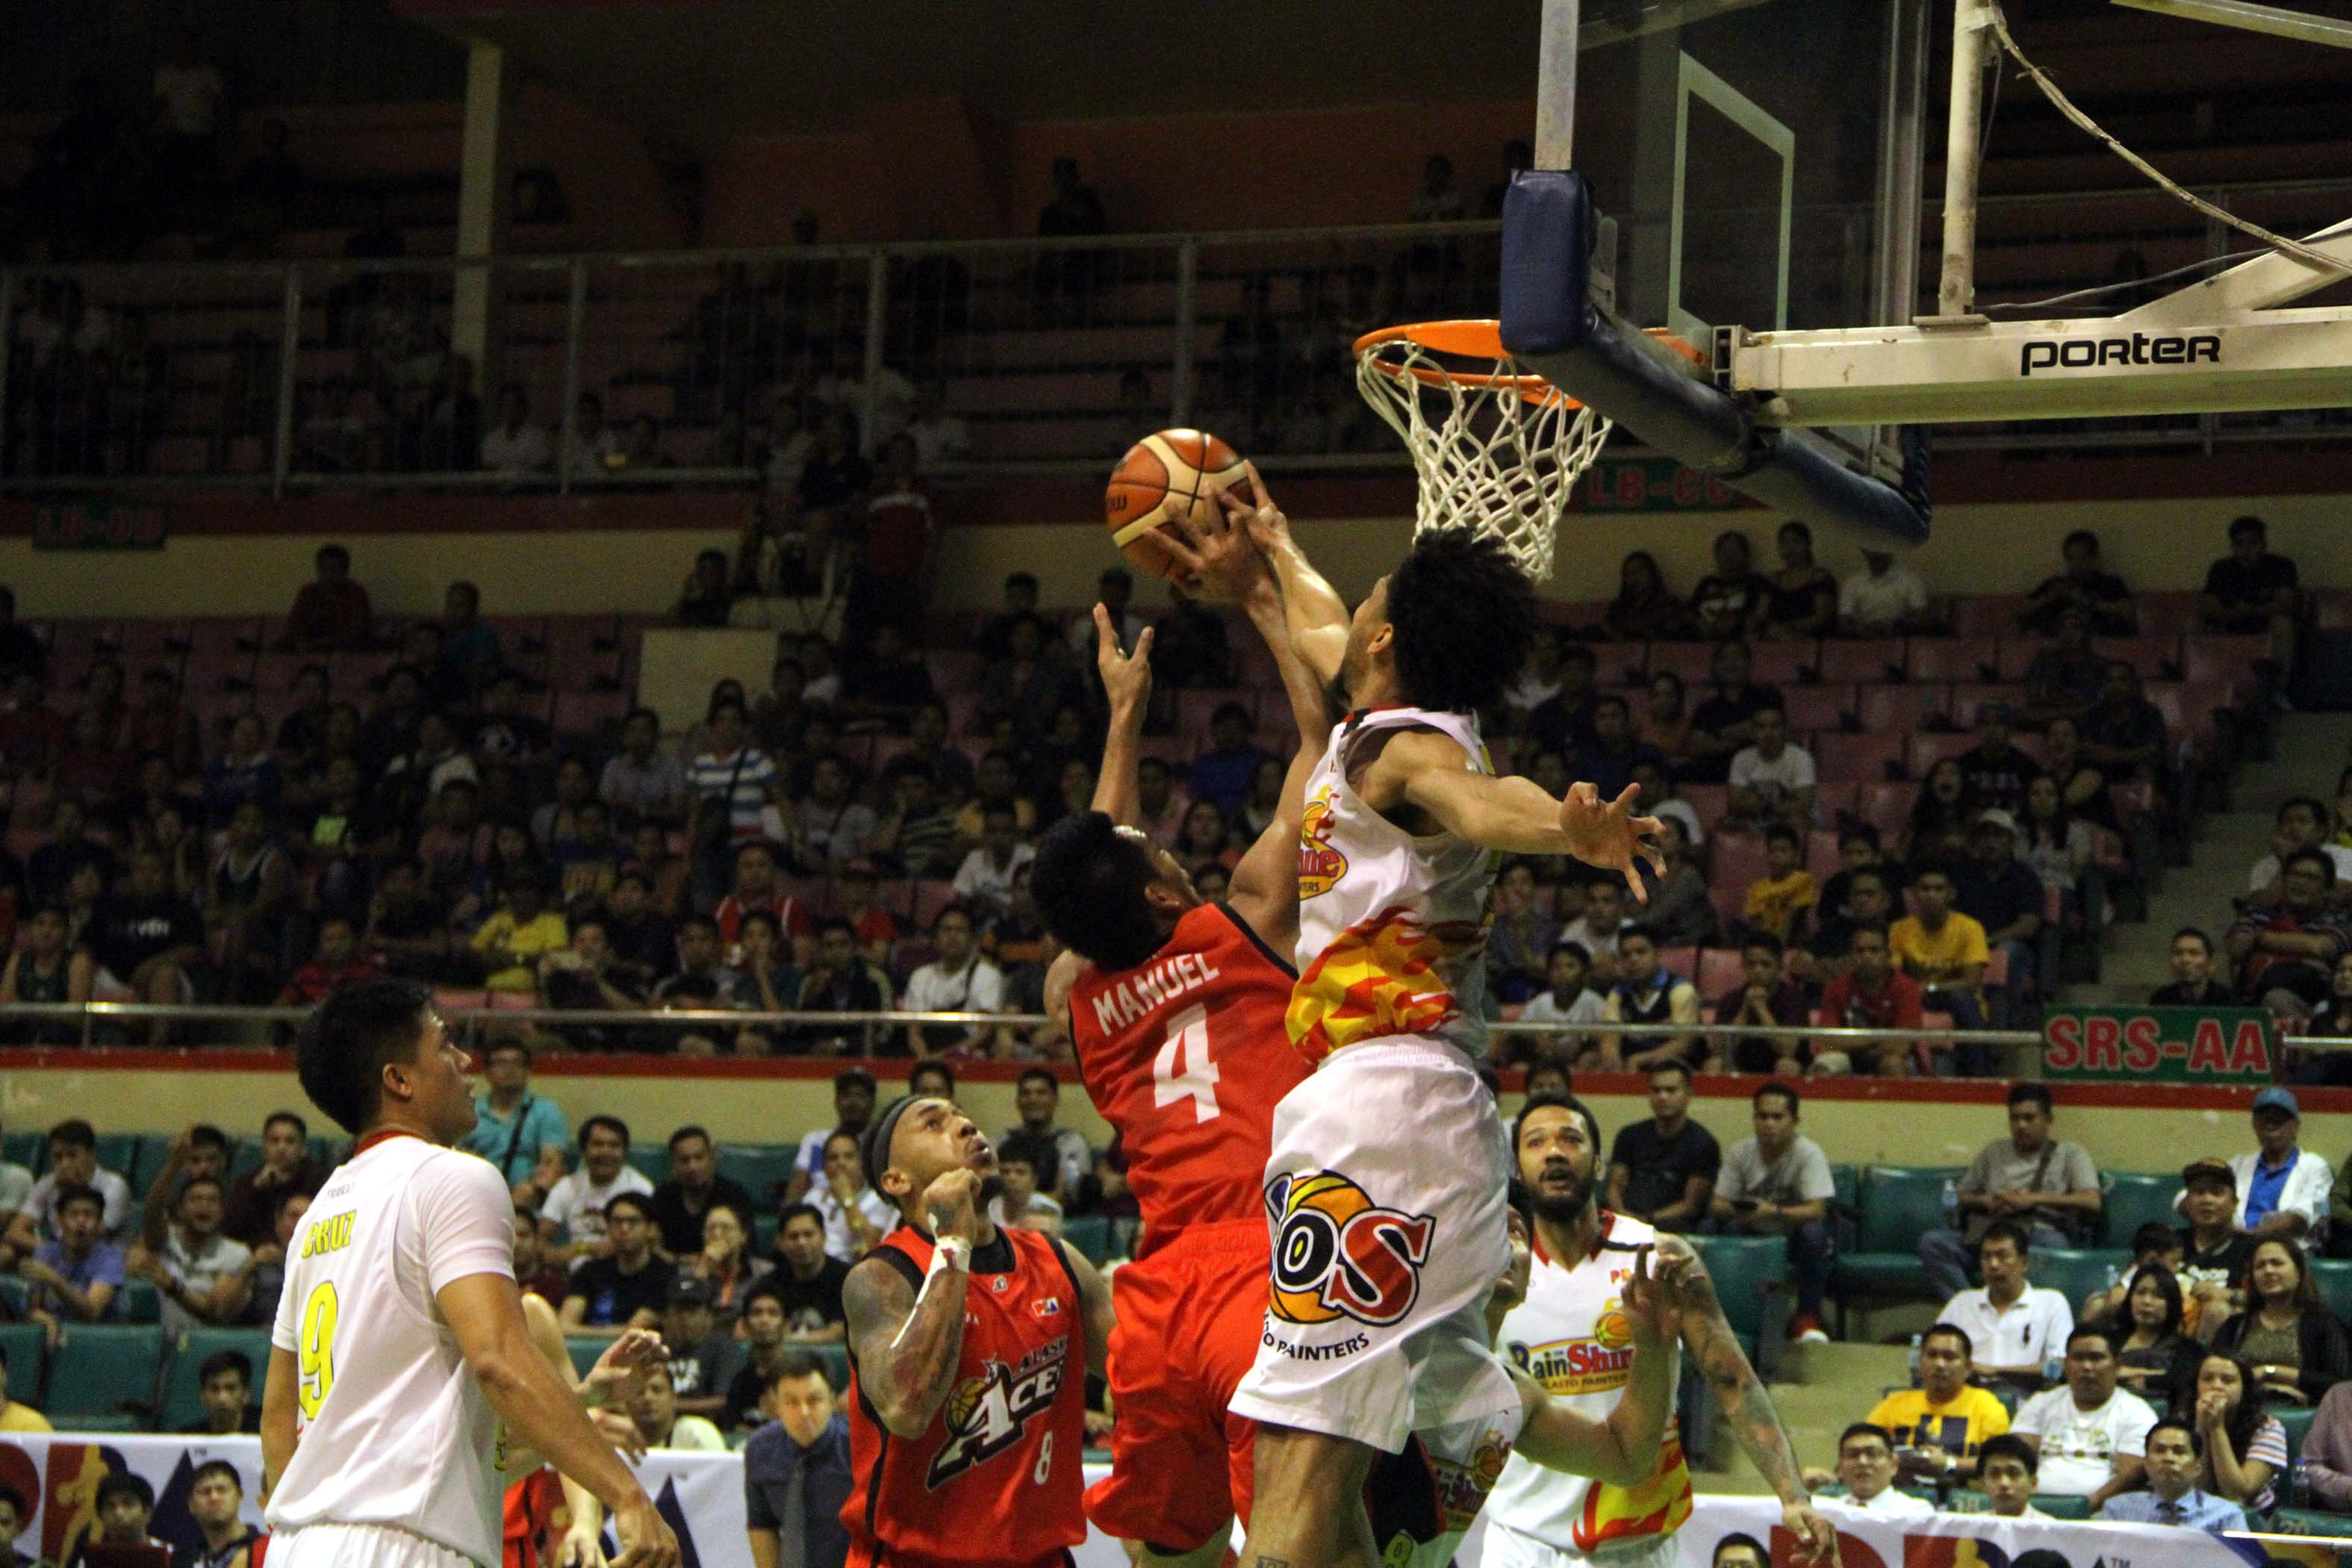 Alaska fought back late in the fourth quarter to turn back Rain or Shine, 94-89, in the final game of the PBA Philippine Cup elimination round at the Cuneta Astrodome on Wednesday night (Pictured). (Photo: Philippine News Agency)